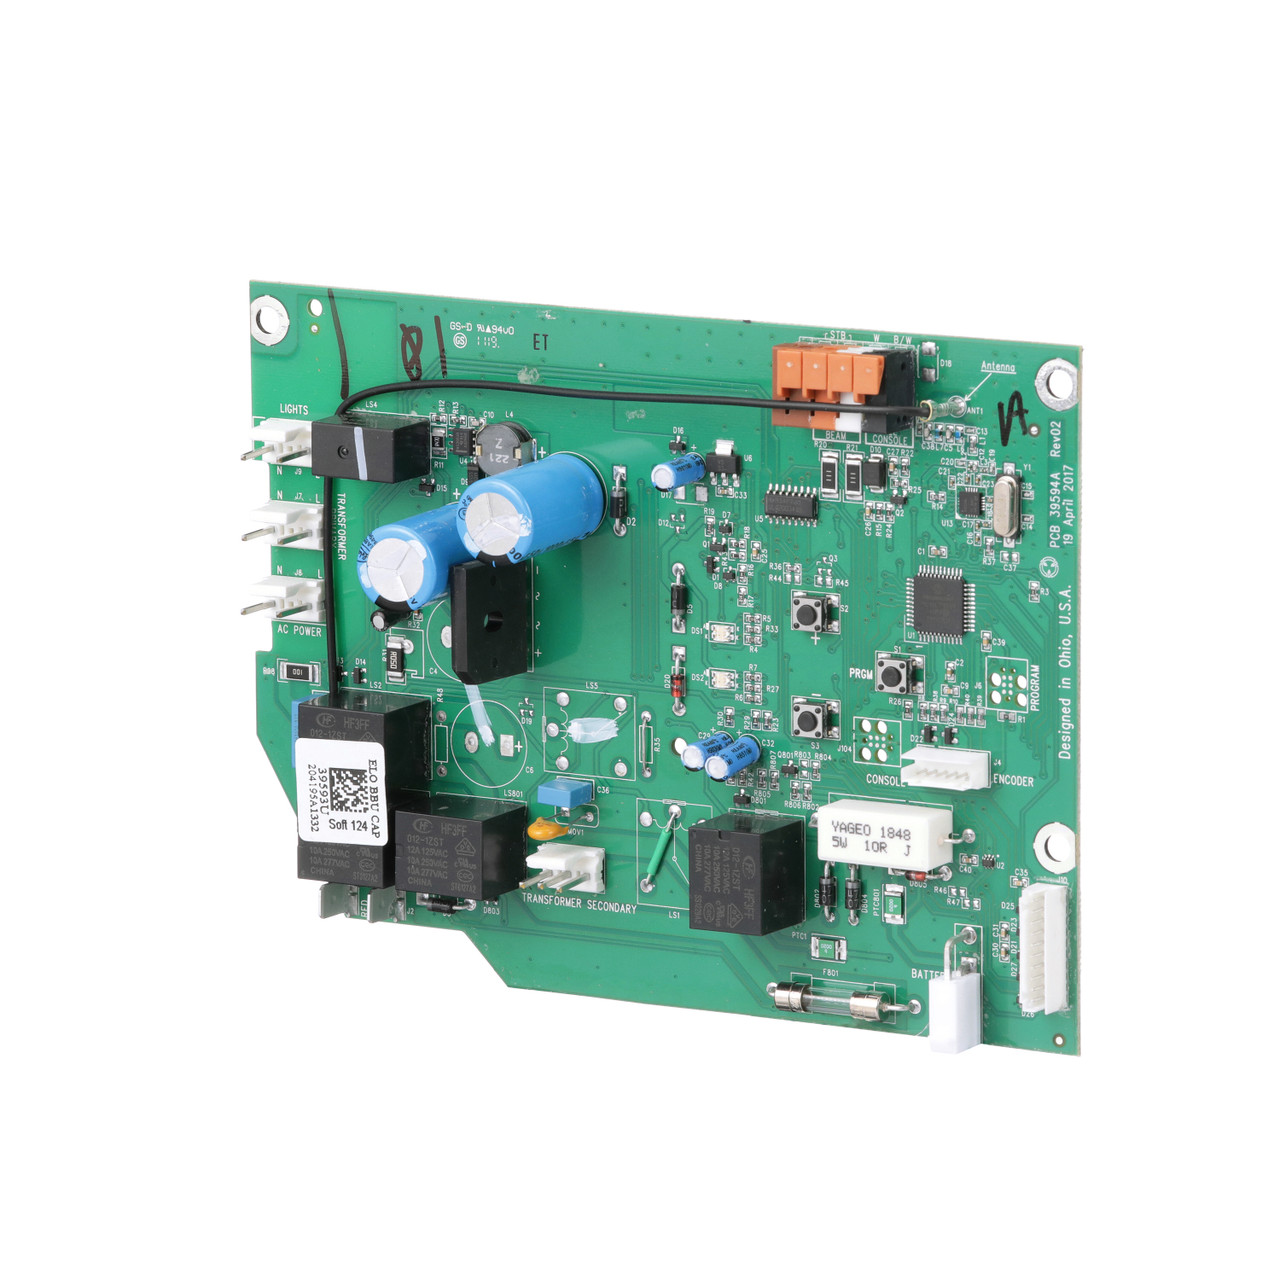 CIRCUIT BOARD - STANDARD DRIVE 650 (WiFi and BBU)